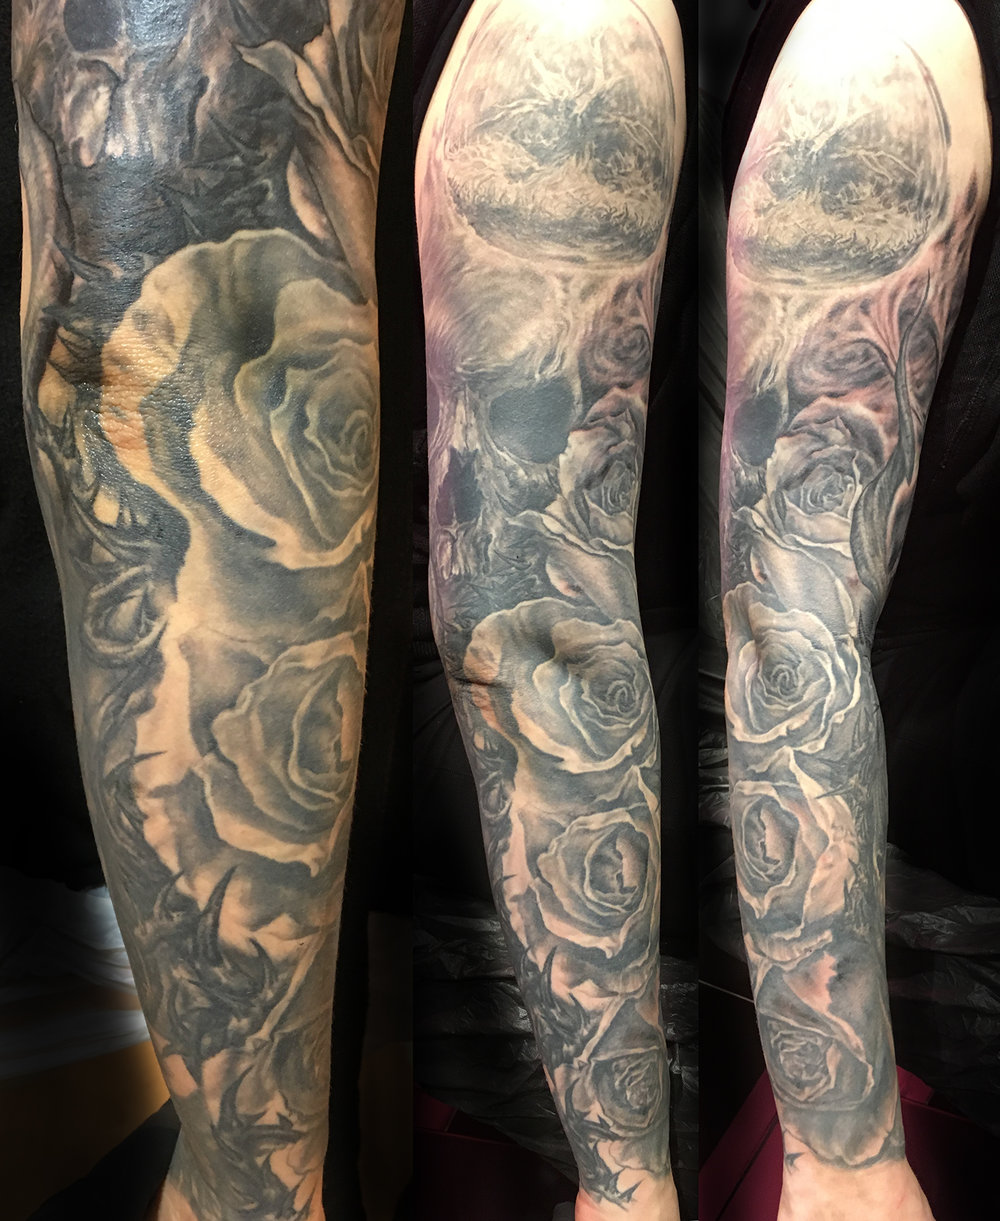 Black and Grey Sleeve Tattoo with Roses, Thorns, Skulls, …Black Widow, etc.  Almost finished with this one!